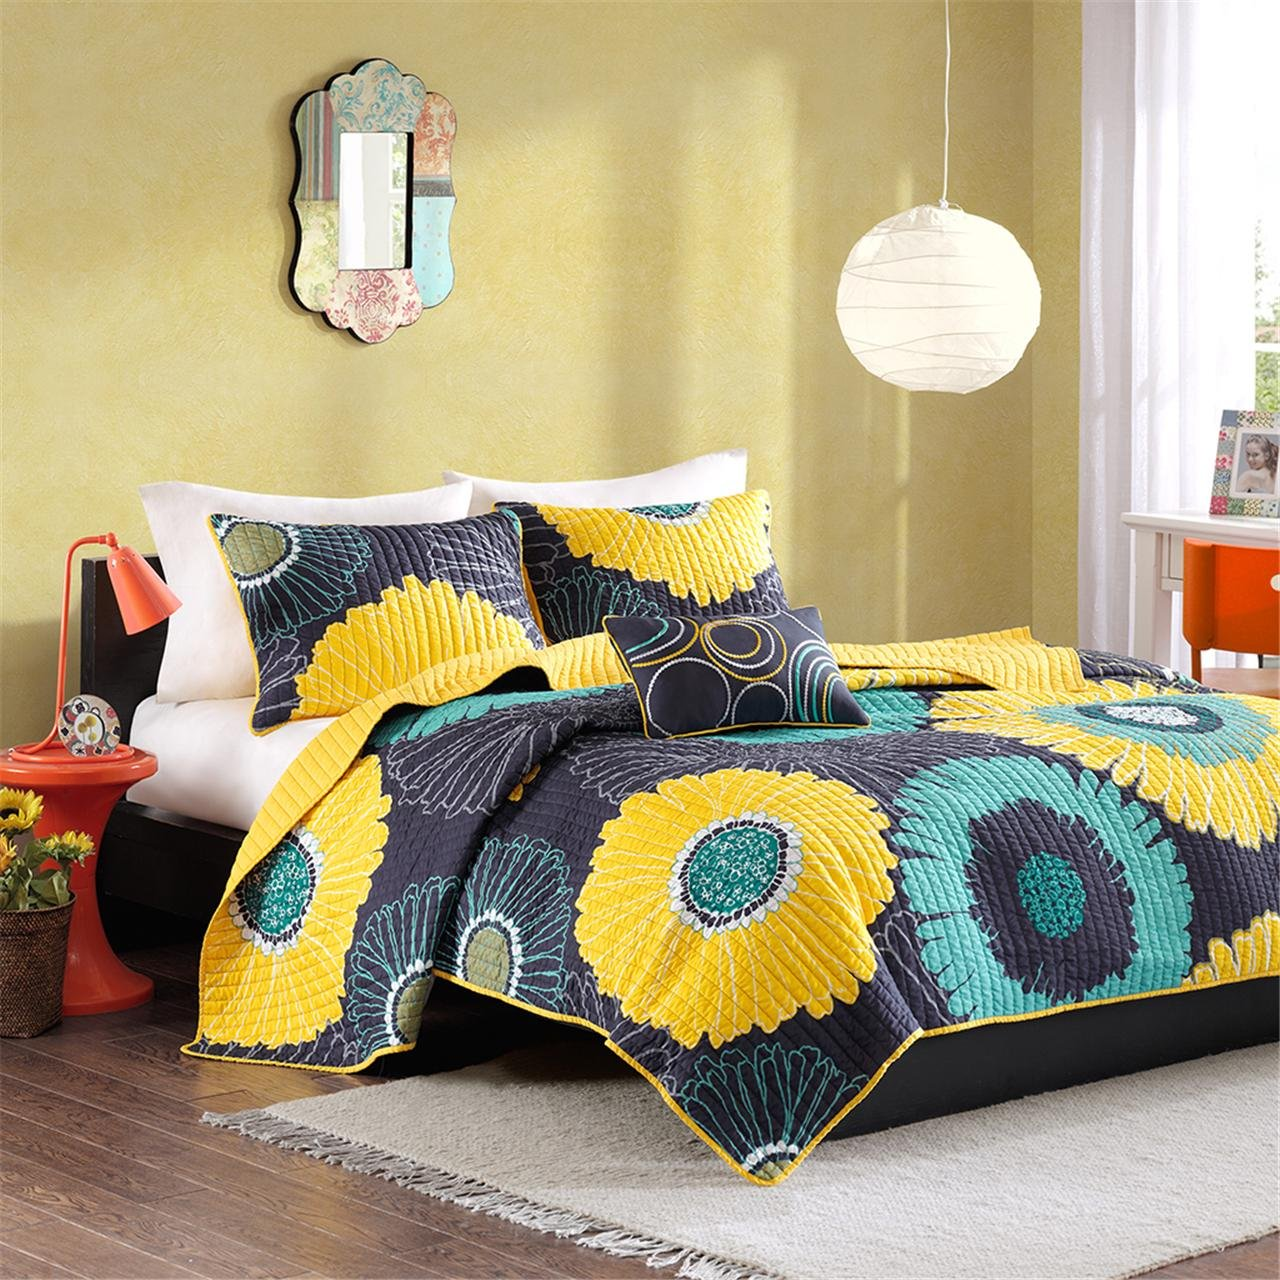 Mi-Zone Alice Full/Queen Girls Quilt Bedding Set - Yellow, Navy, Teal, Floral – 4 Piece Teen Girl Bedding Quilt Coverlets – Ultra Soft Microfiber With 100% Cotton Filling Bed Quilts Quilted Coverlet